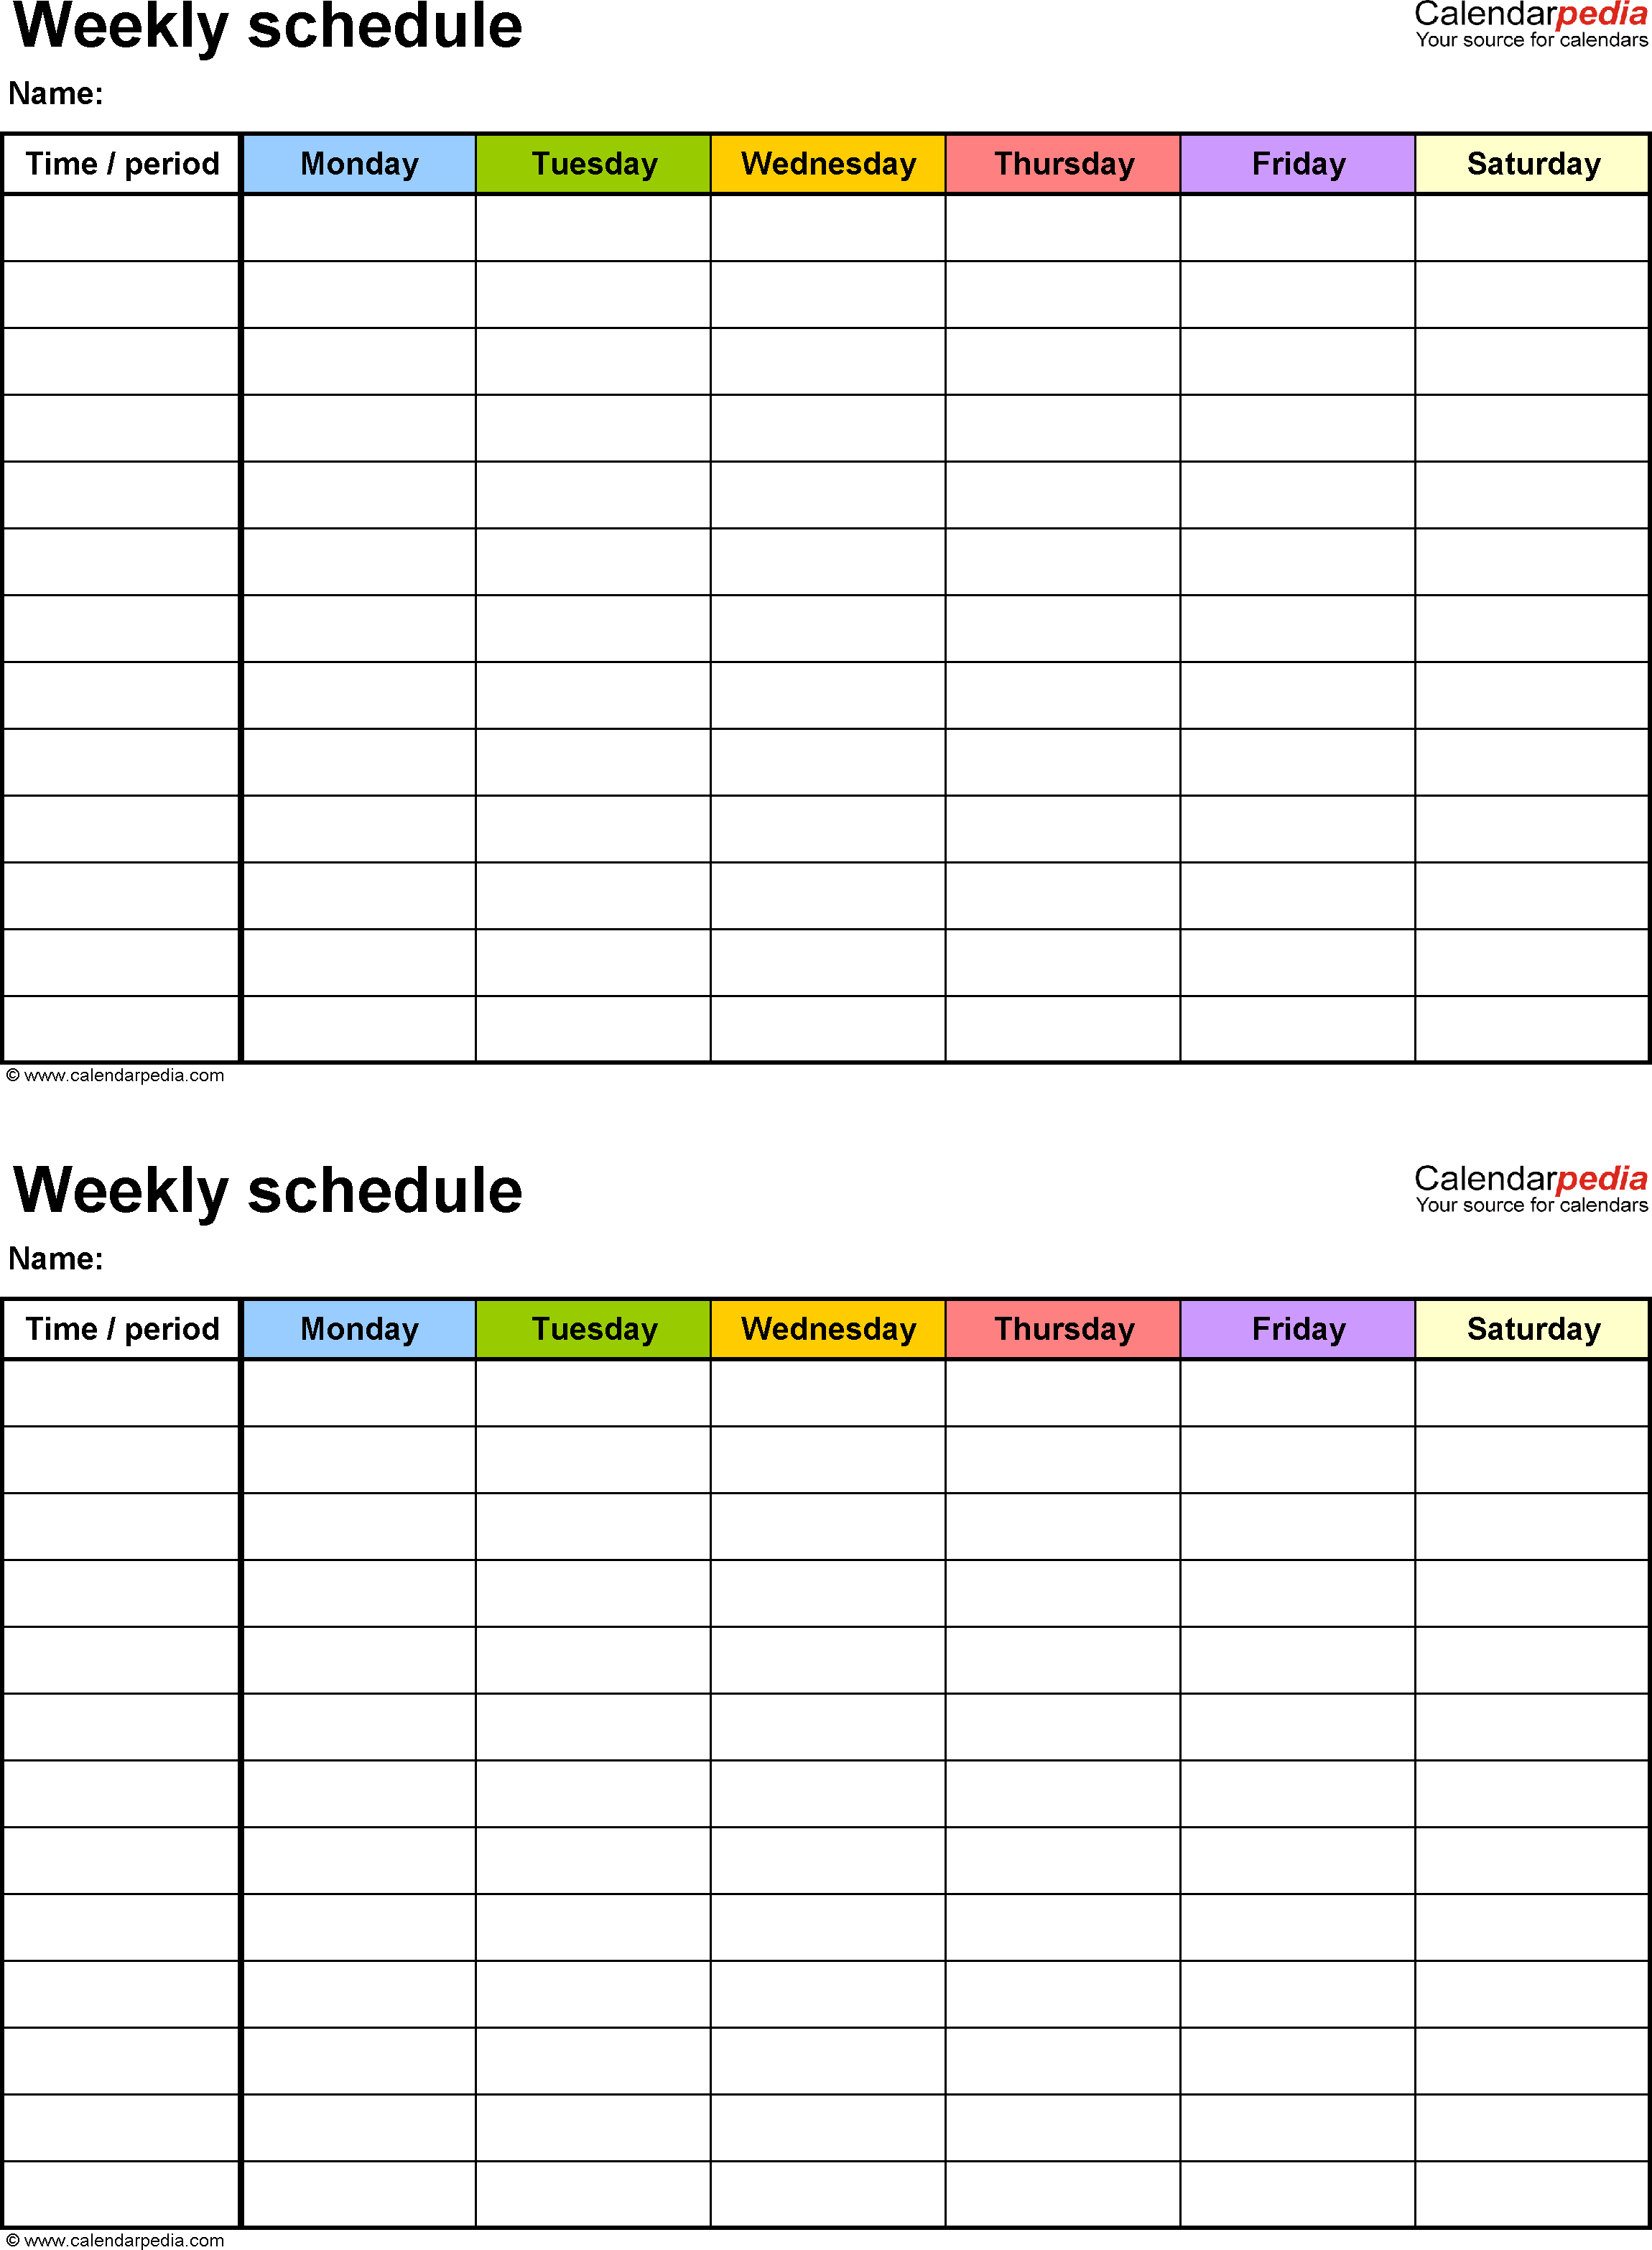 Weekly Schedule Template For Word Version 9: 2 Schedules On One